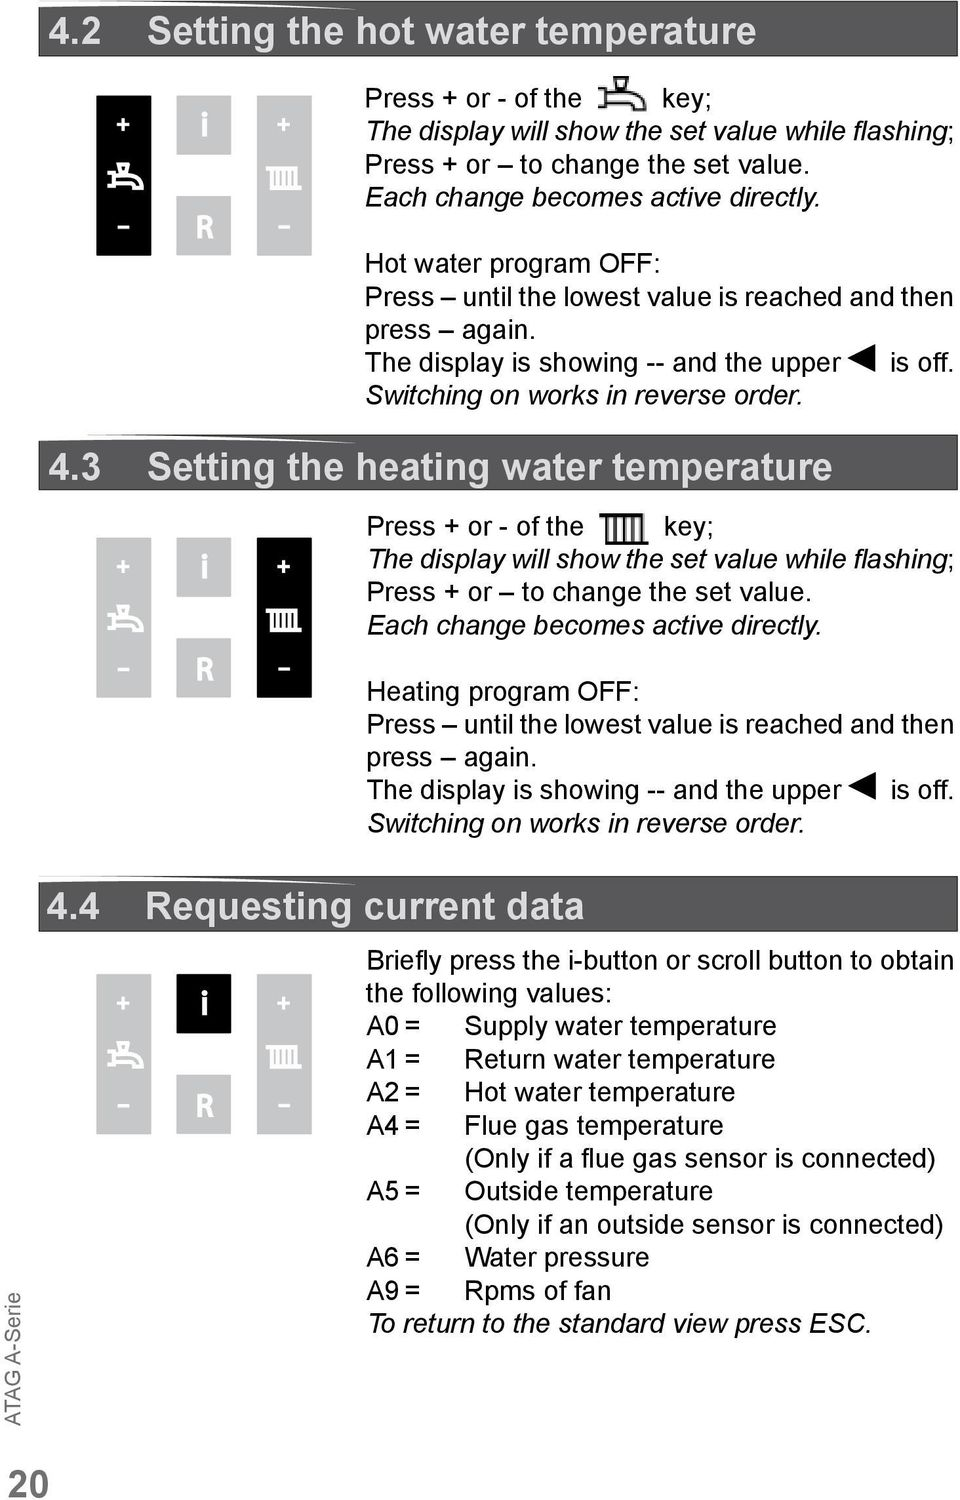 3 Setting the heating water temperature i - R - Press or - of the key; The display will show the set value while flashing; Press or to change the set value. Each change becomes active directly.